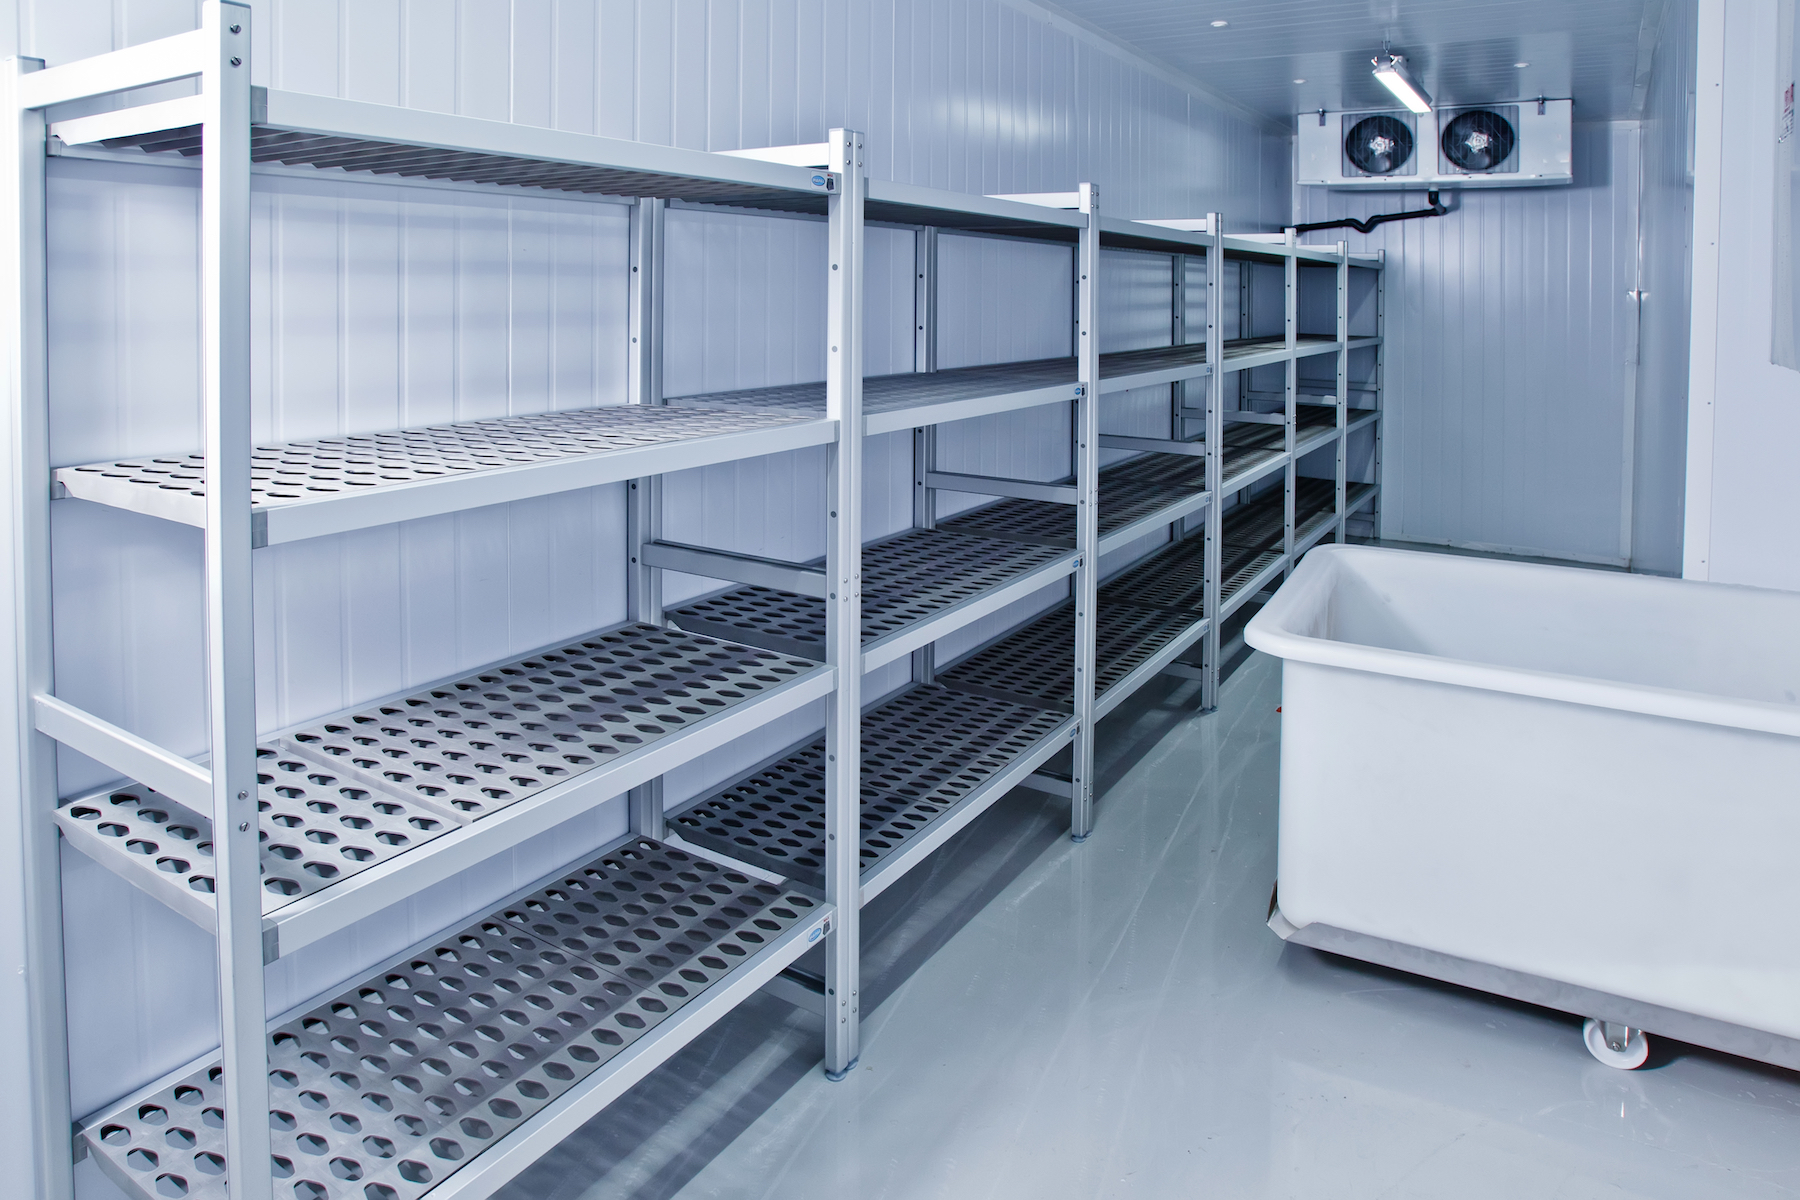 stock-photo-refrigerated-warehouse-room-for-creating-ice-and-food-storage-609094460